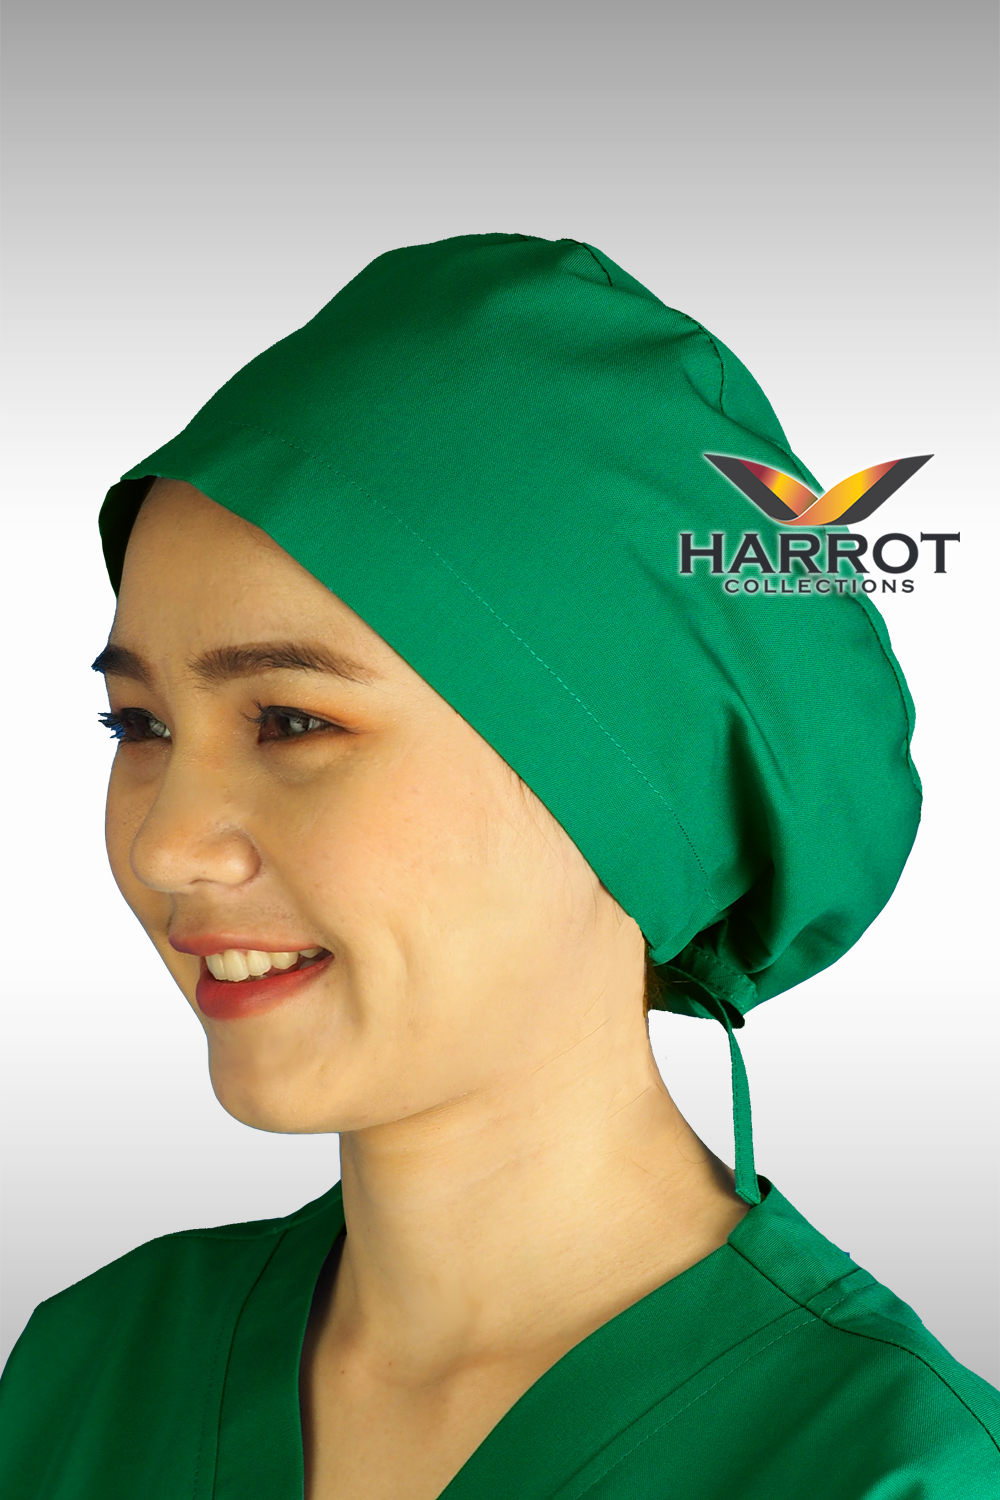 Green surgical cap